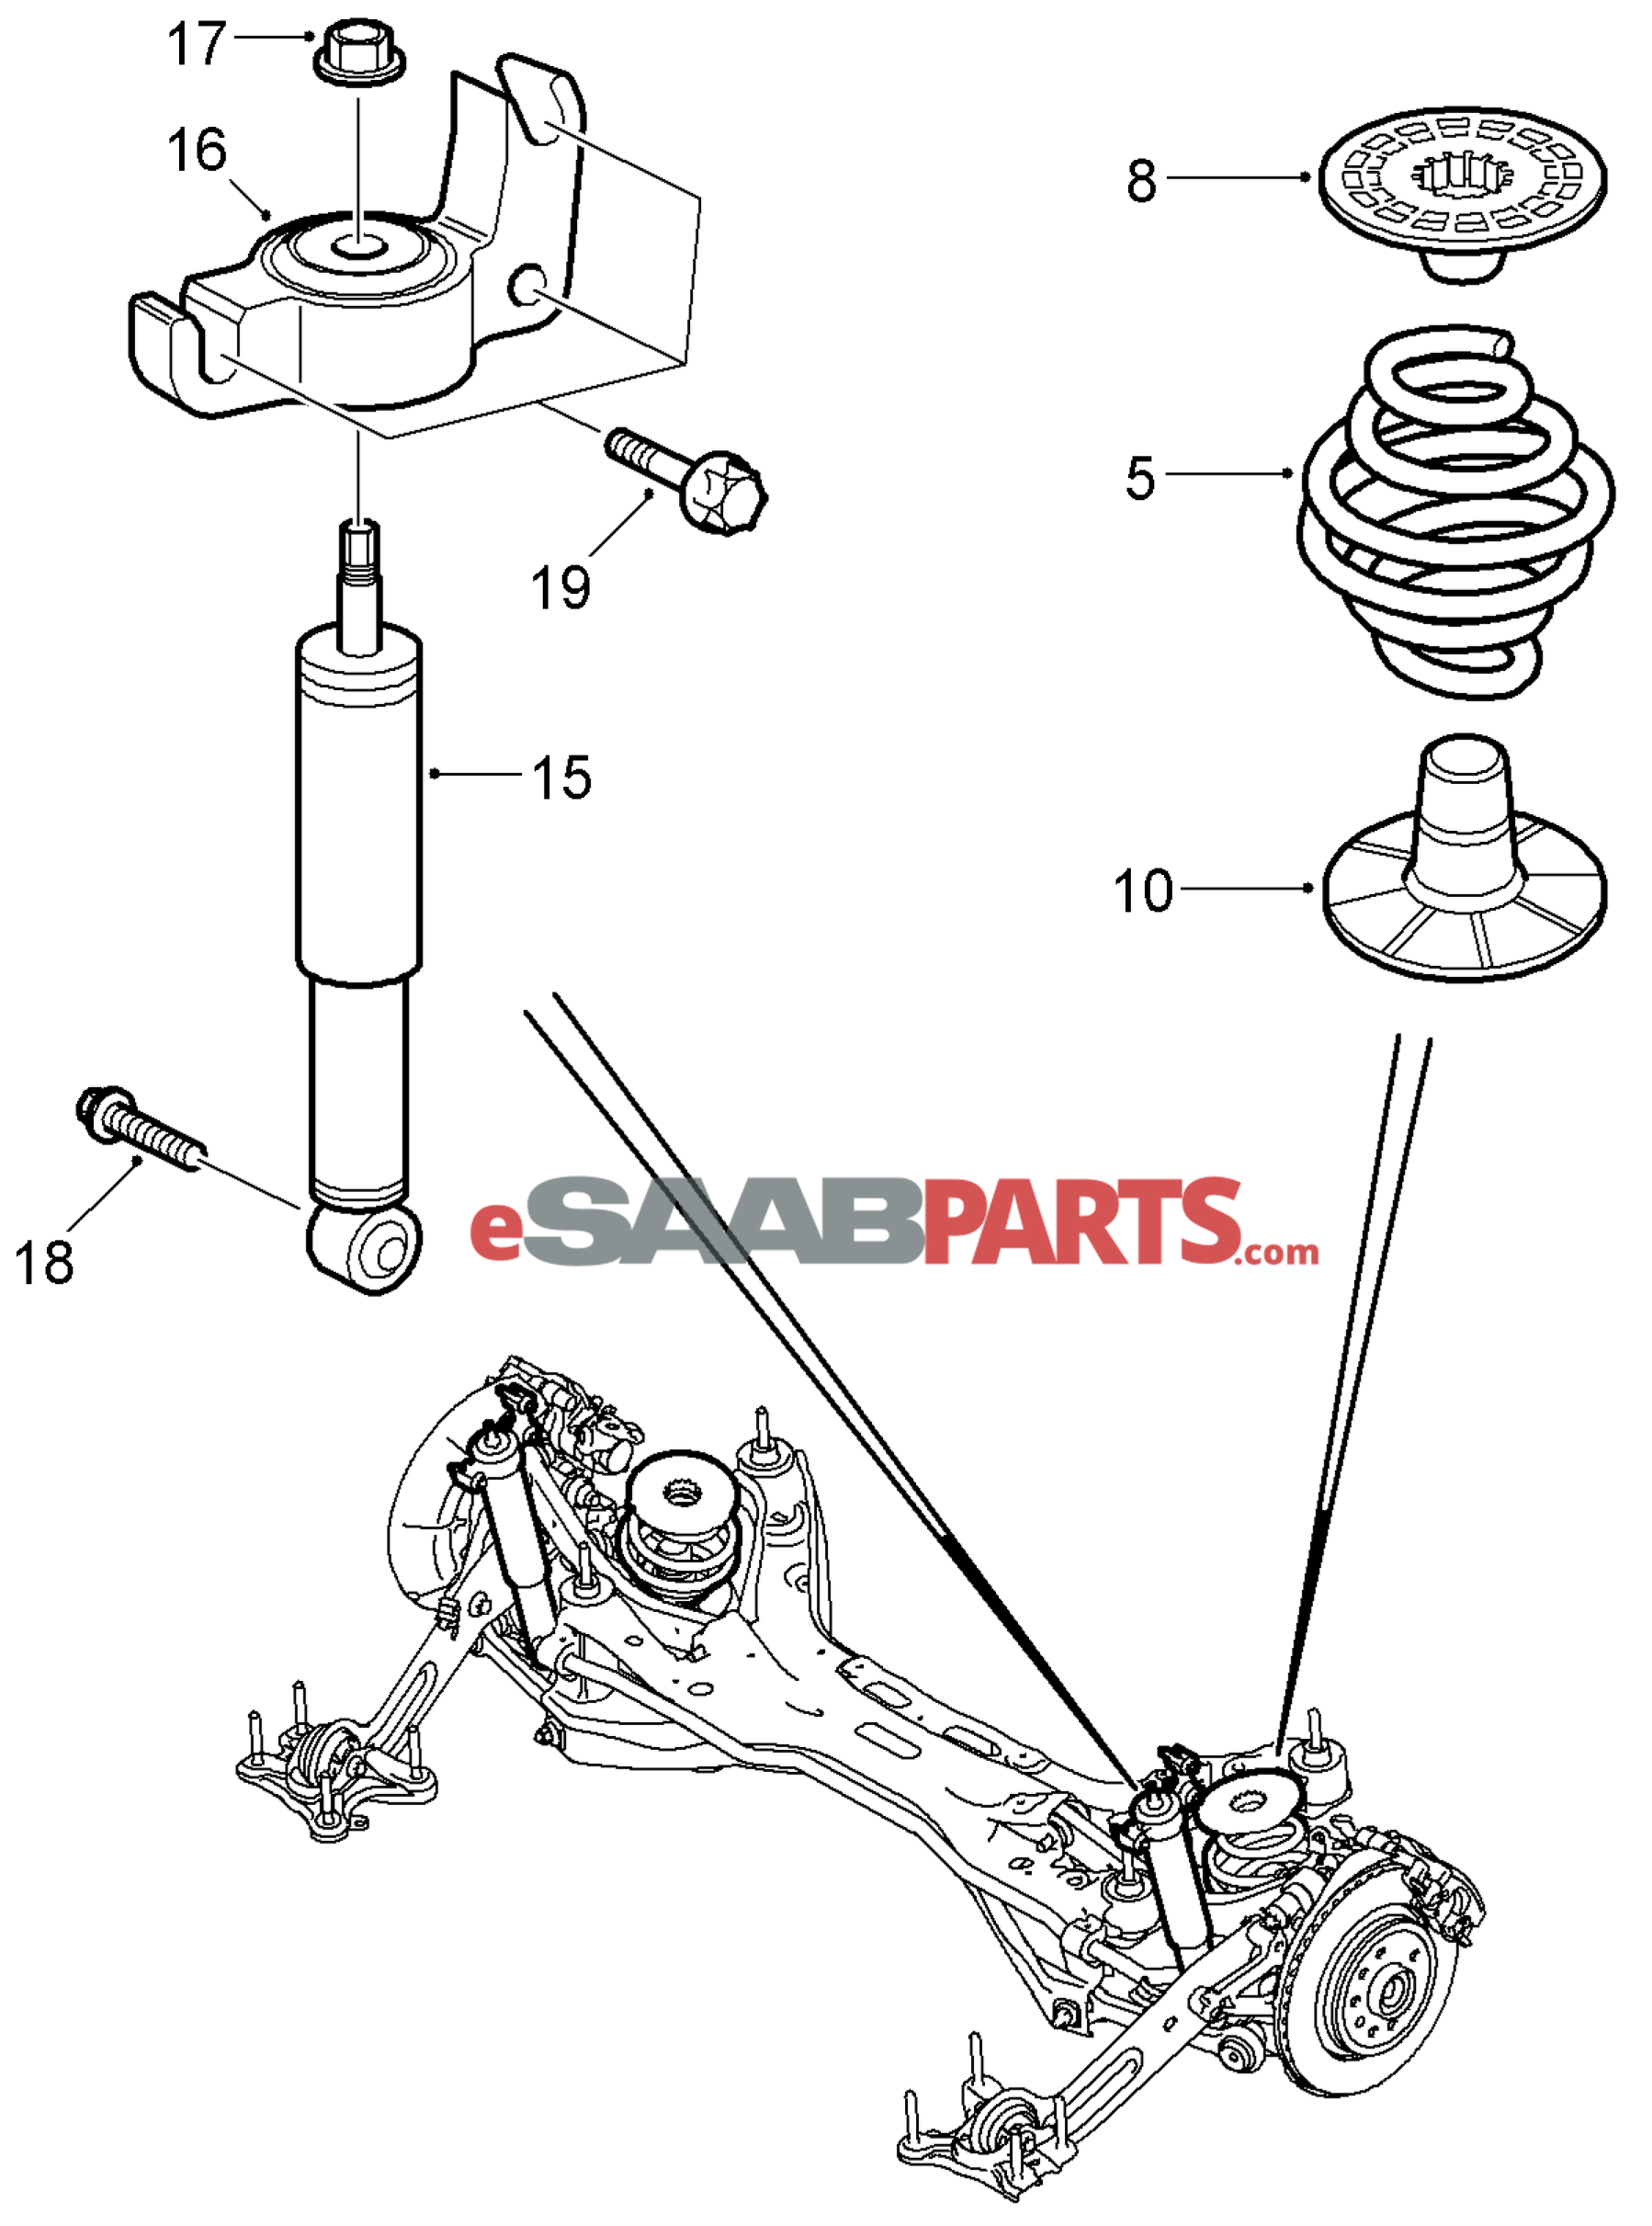 Saab Spring Support